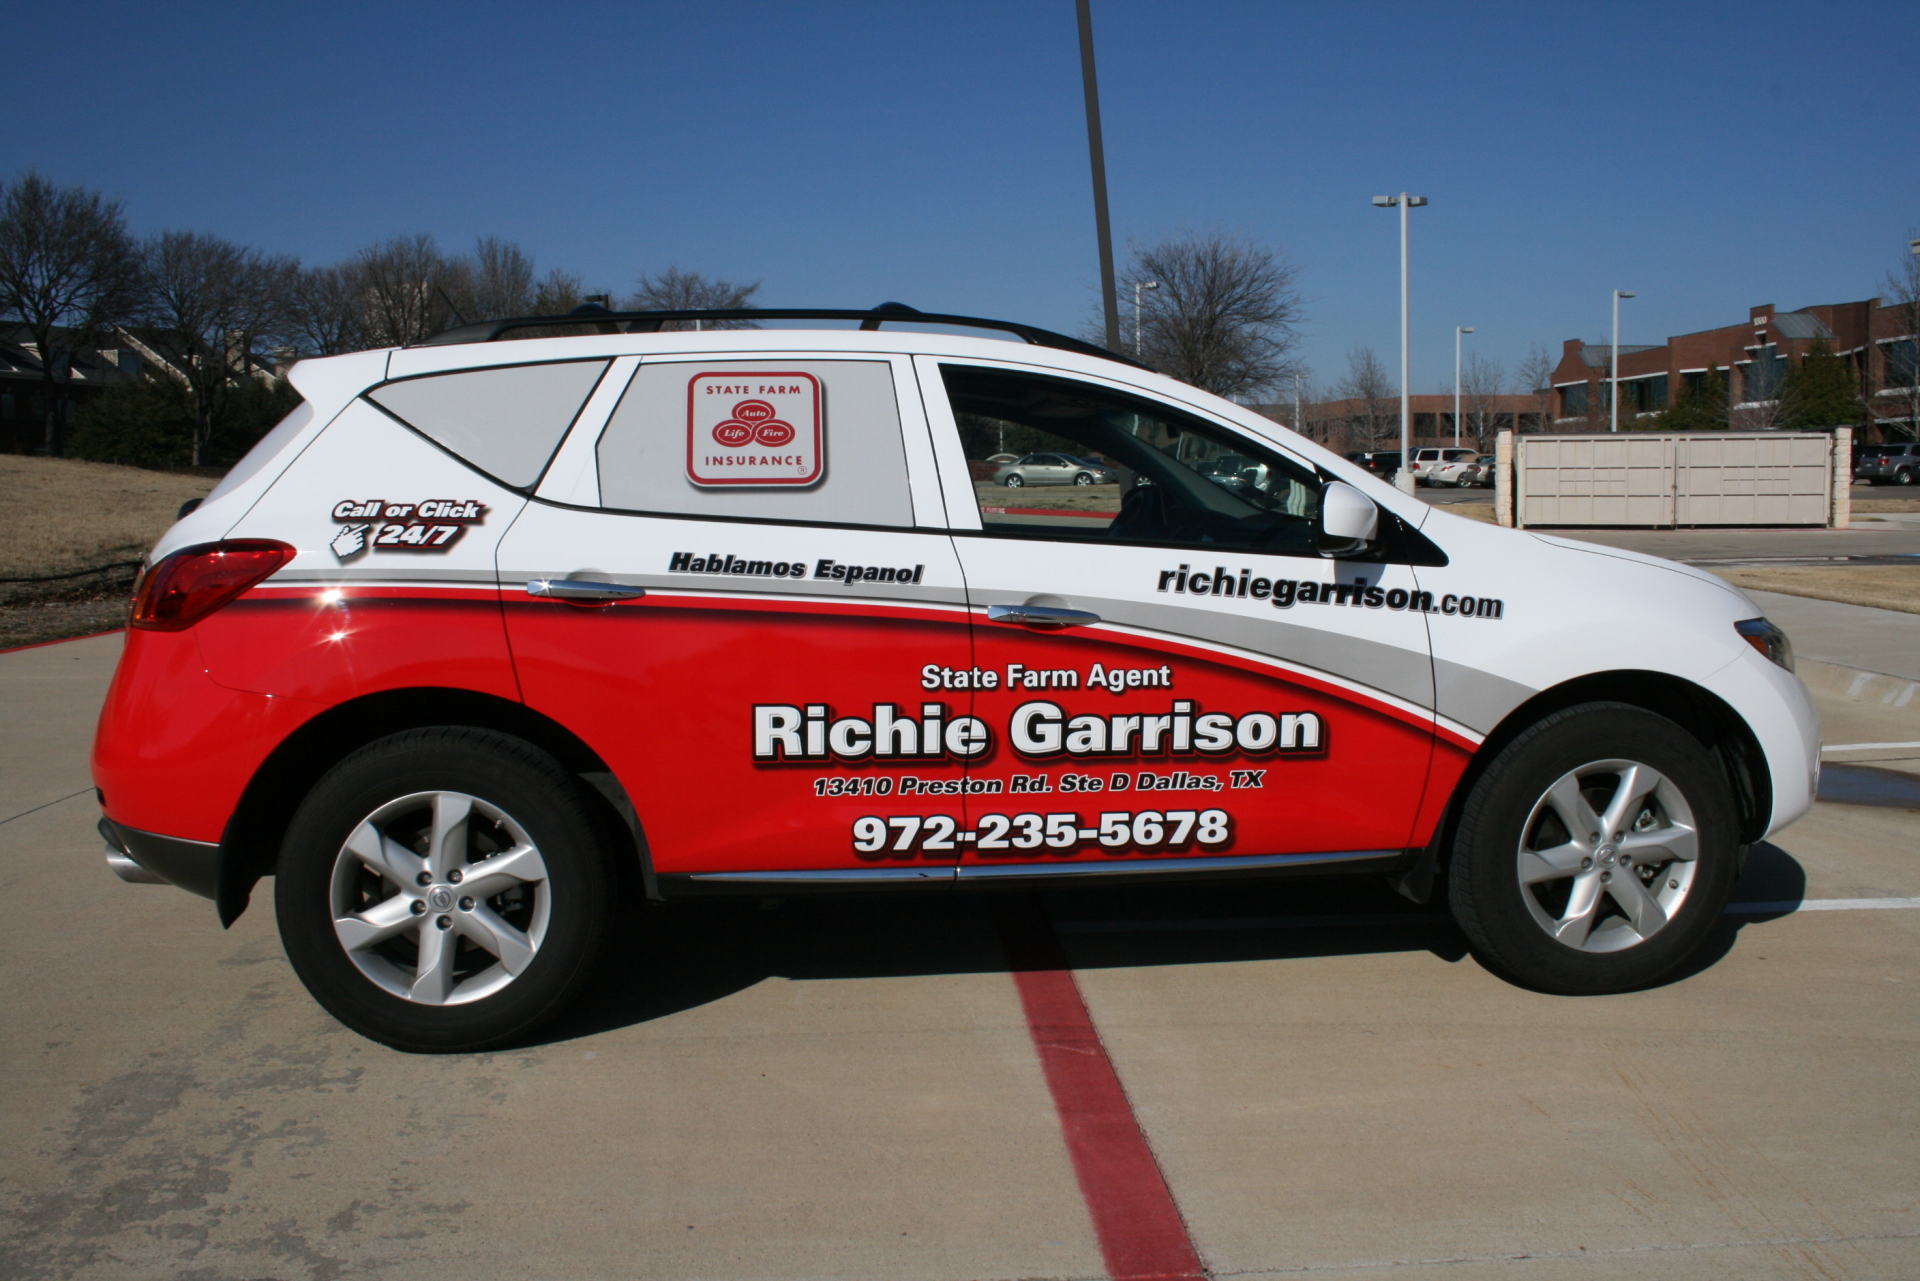 State Farm Agent Richie Garrison , State Farm Vehicle Wraps, vehicle wraps dallas tx